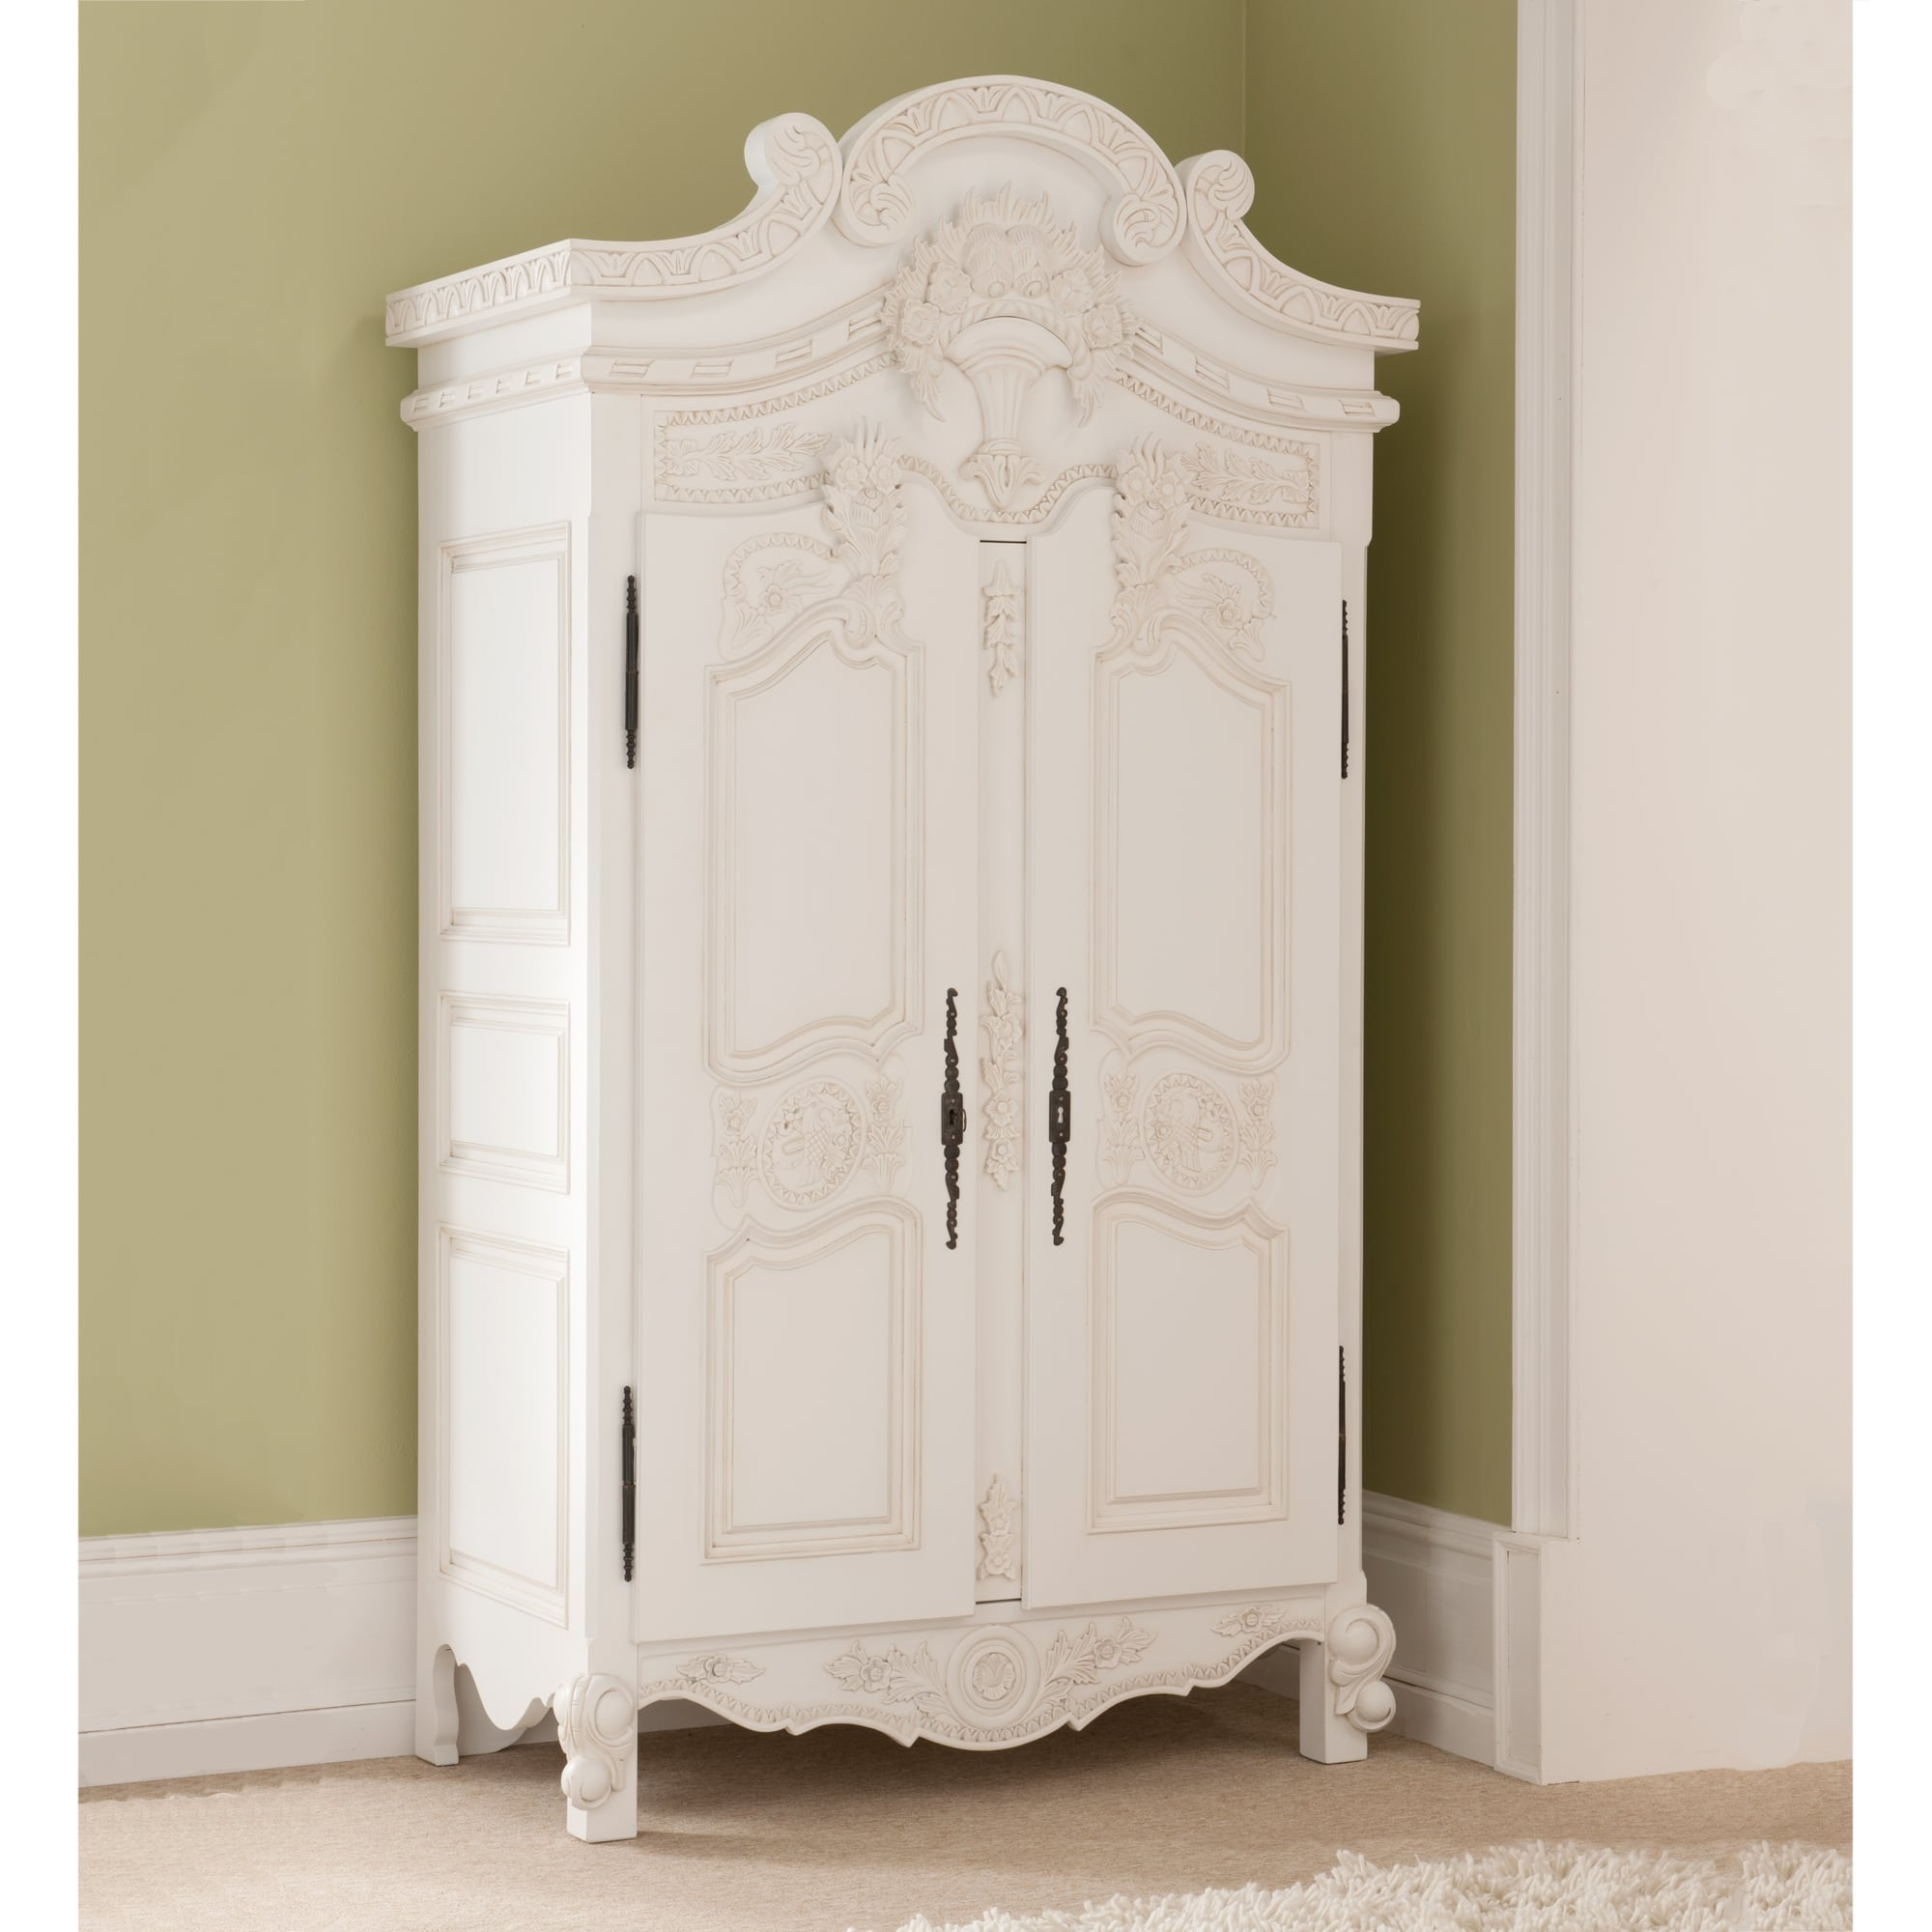 Rococo antique french wardrobe a stunning addition to our for French rococo style